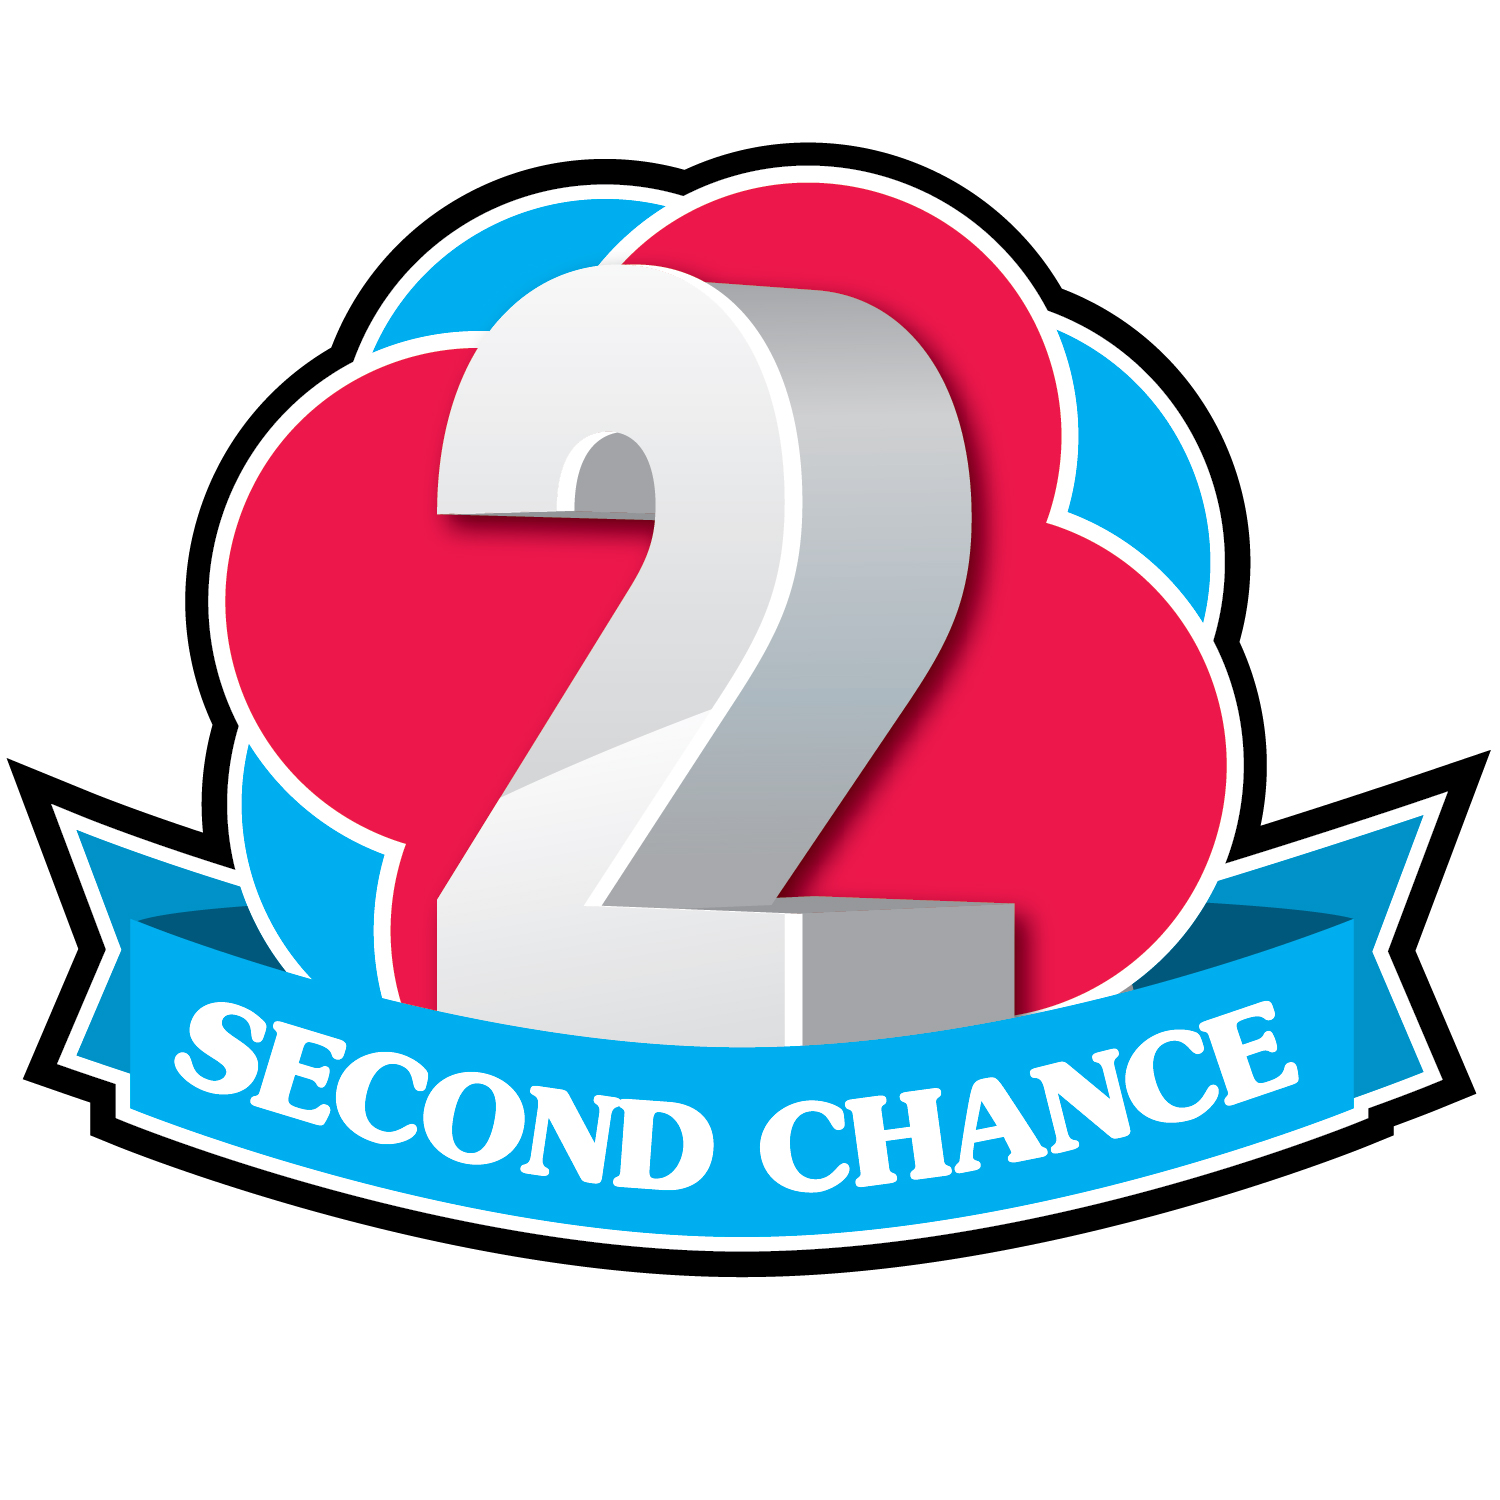 No second chance clipart png transparent library DC Lottery Second Chance Contest png transparent library